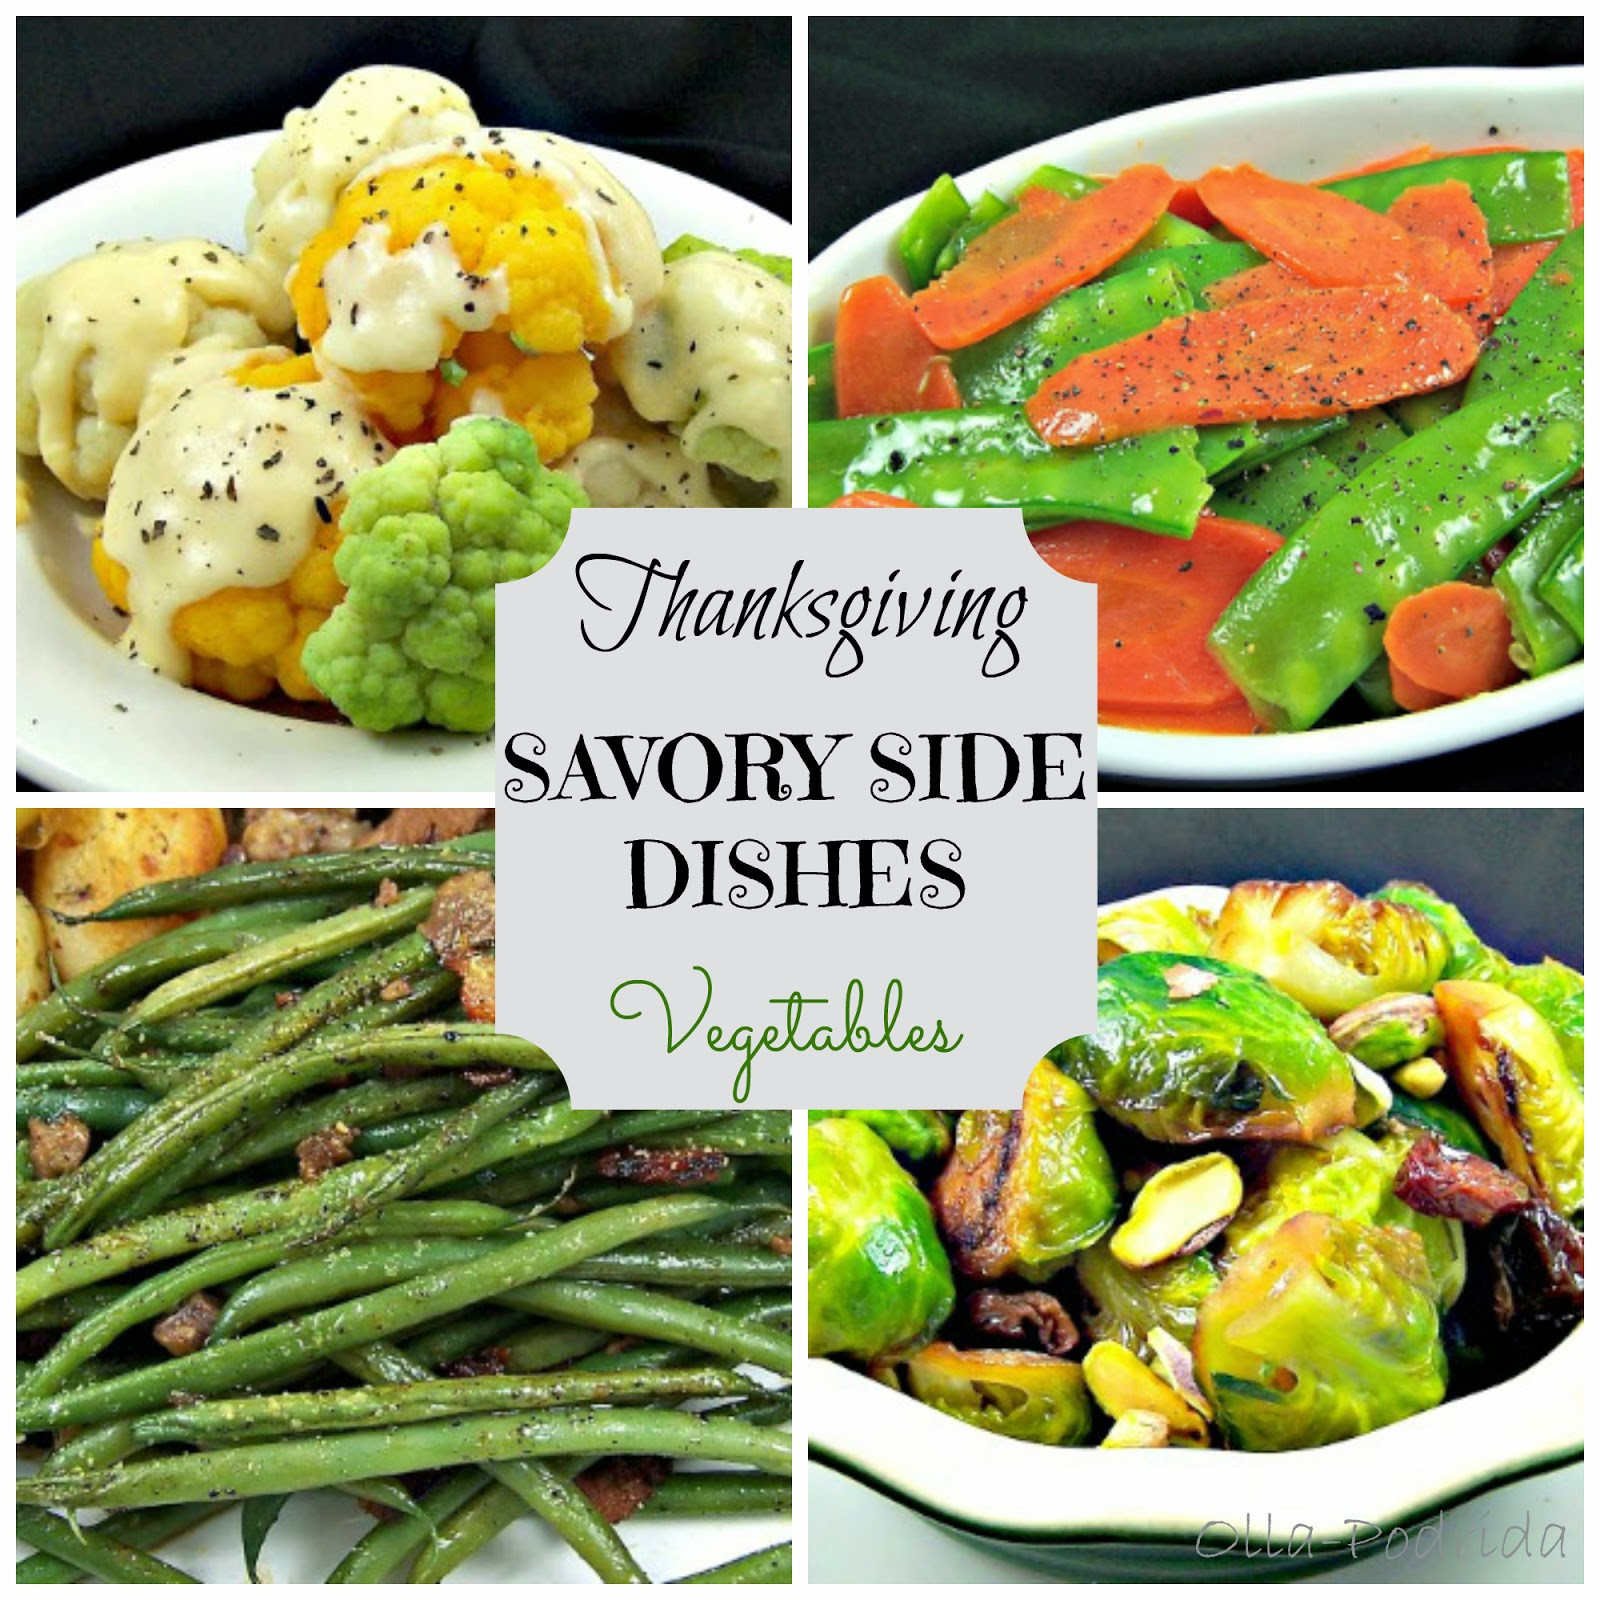 Veggie Side Dishes For Thanksgiving  Olla Podrida Thanksgiving Savory Side Dishes Ve ables